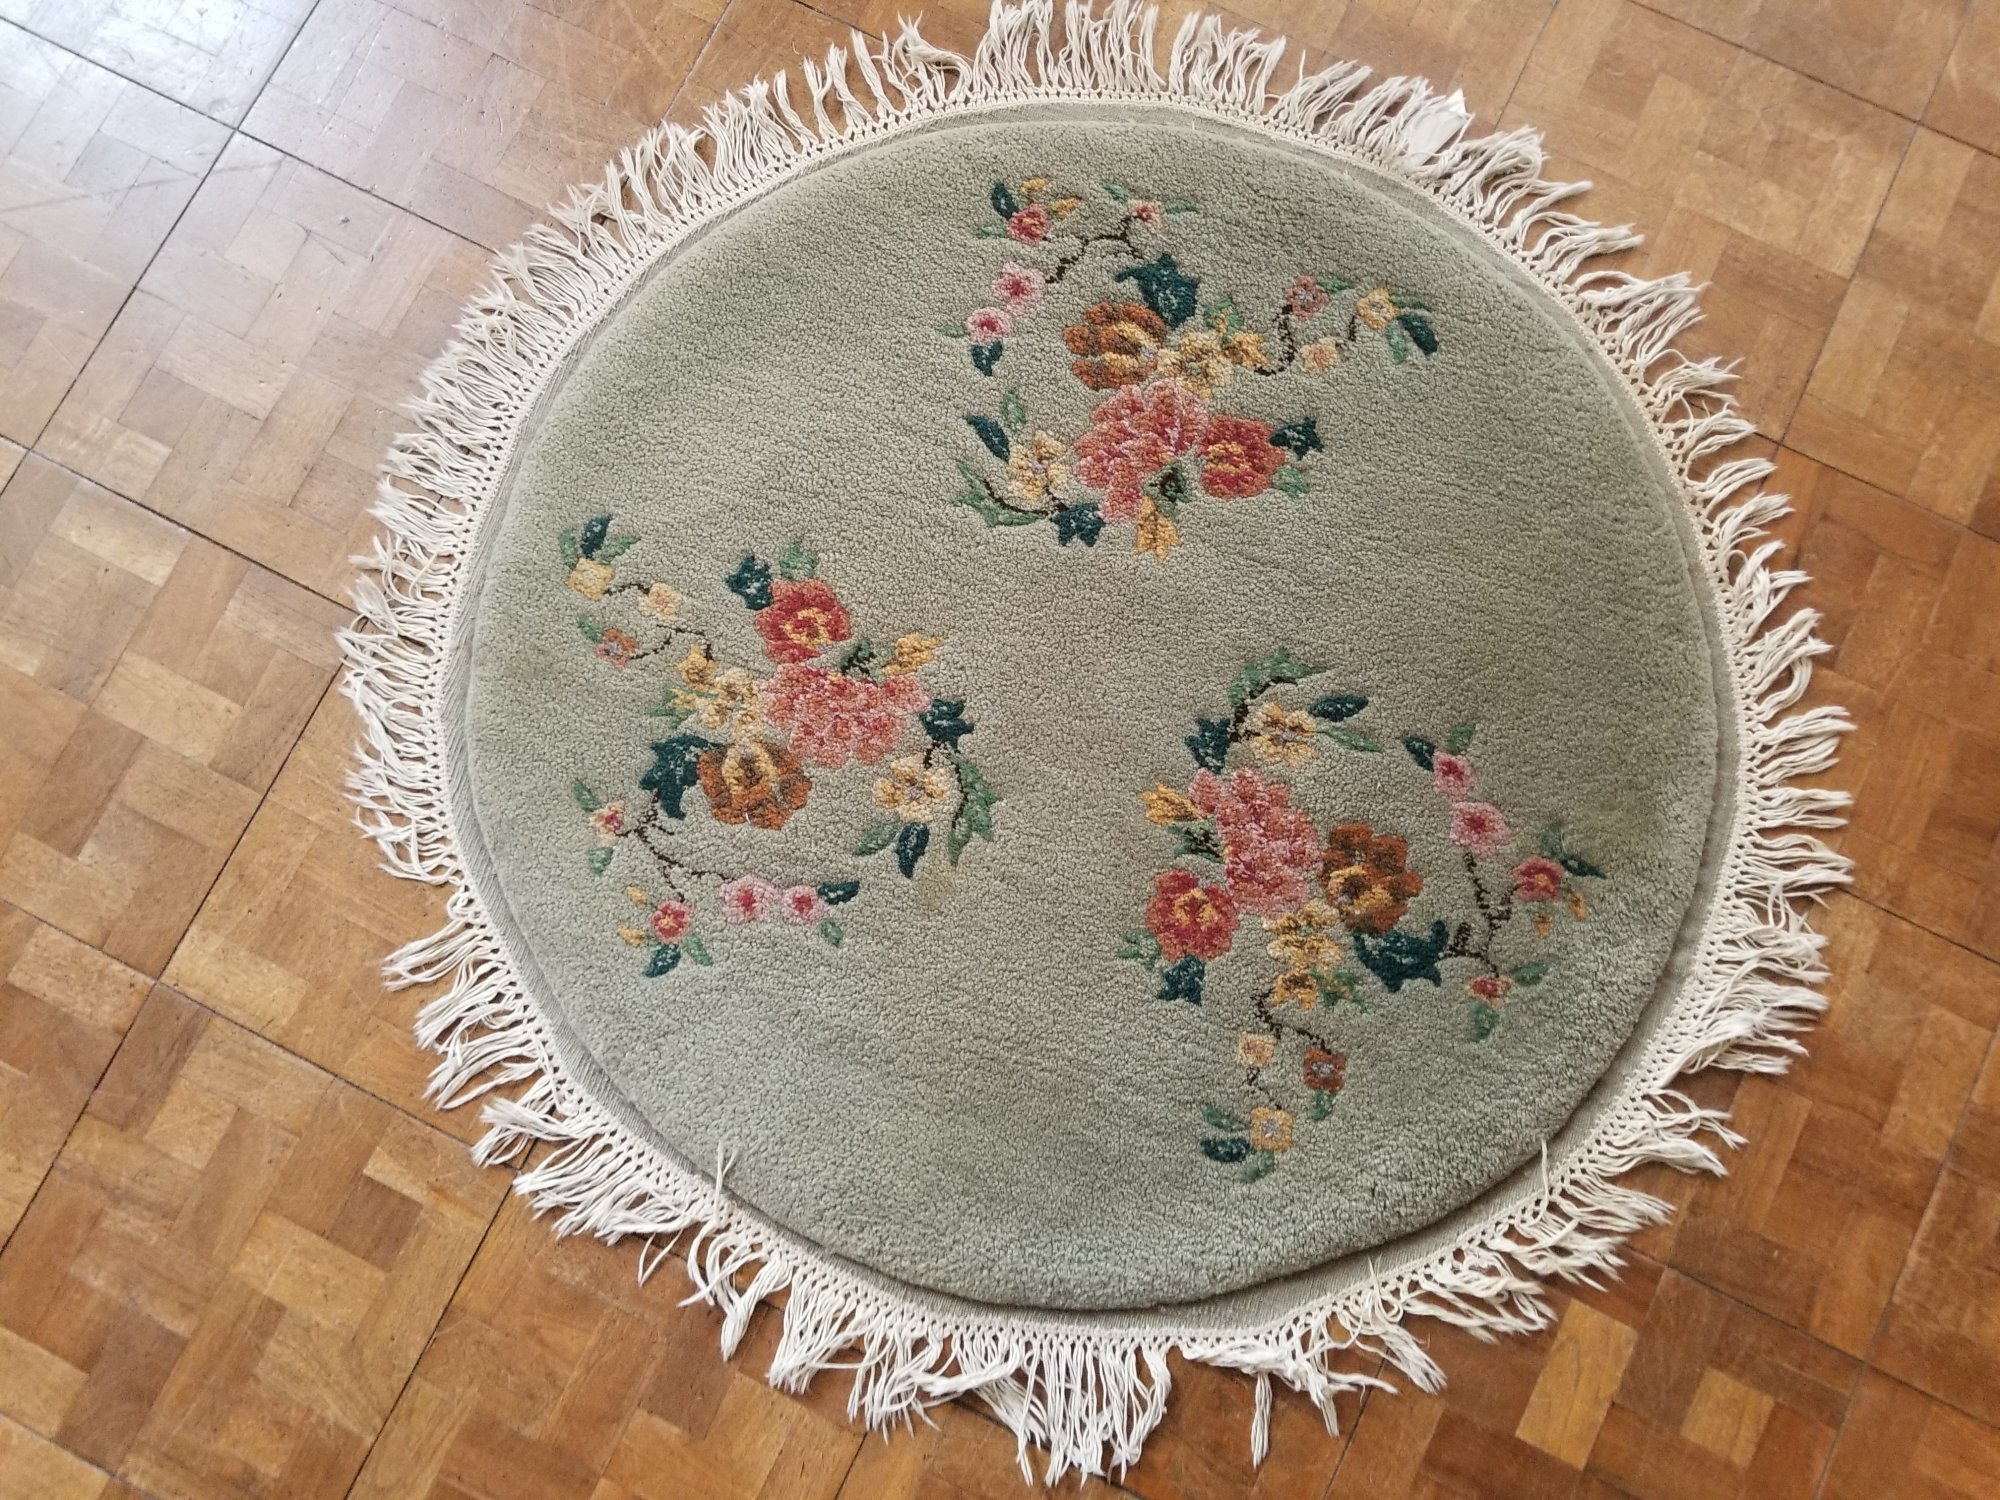 3' X 3' light green field with flowers in pink yellow dark green and brown     PUT